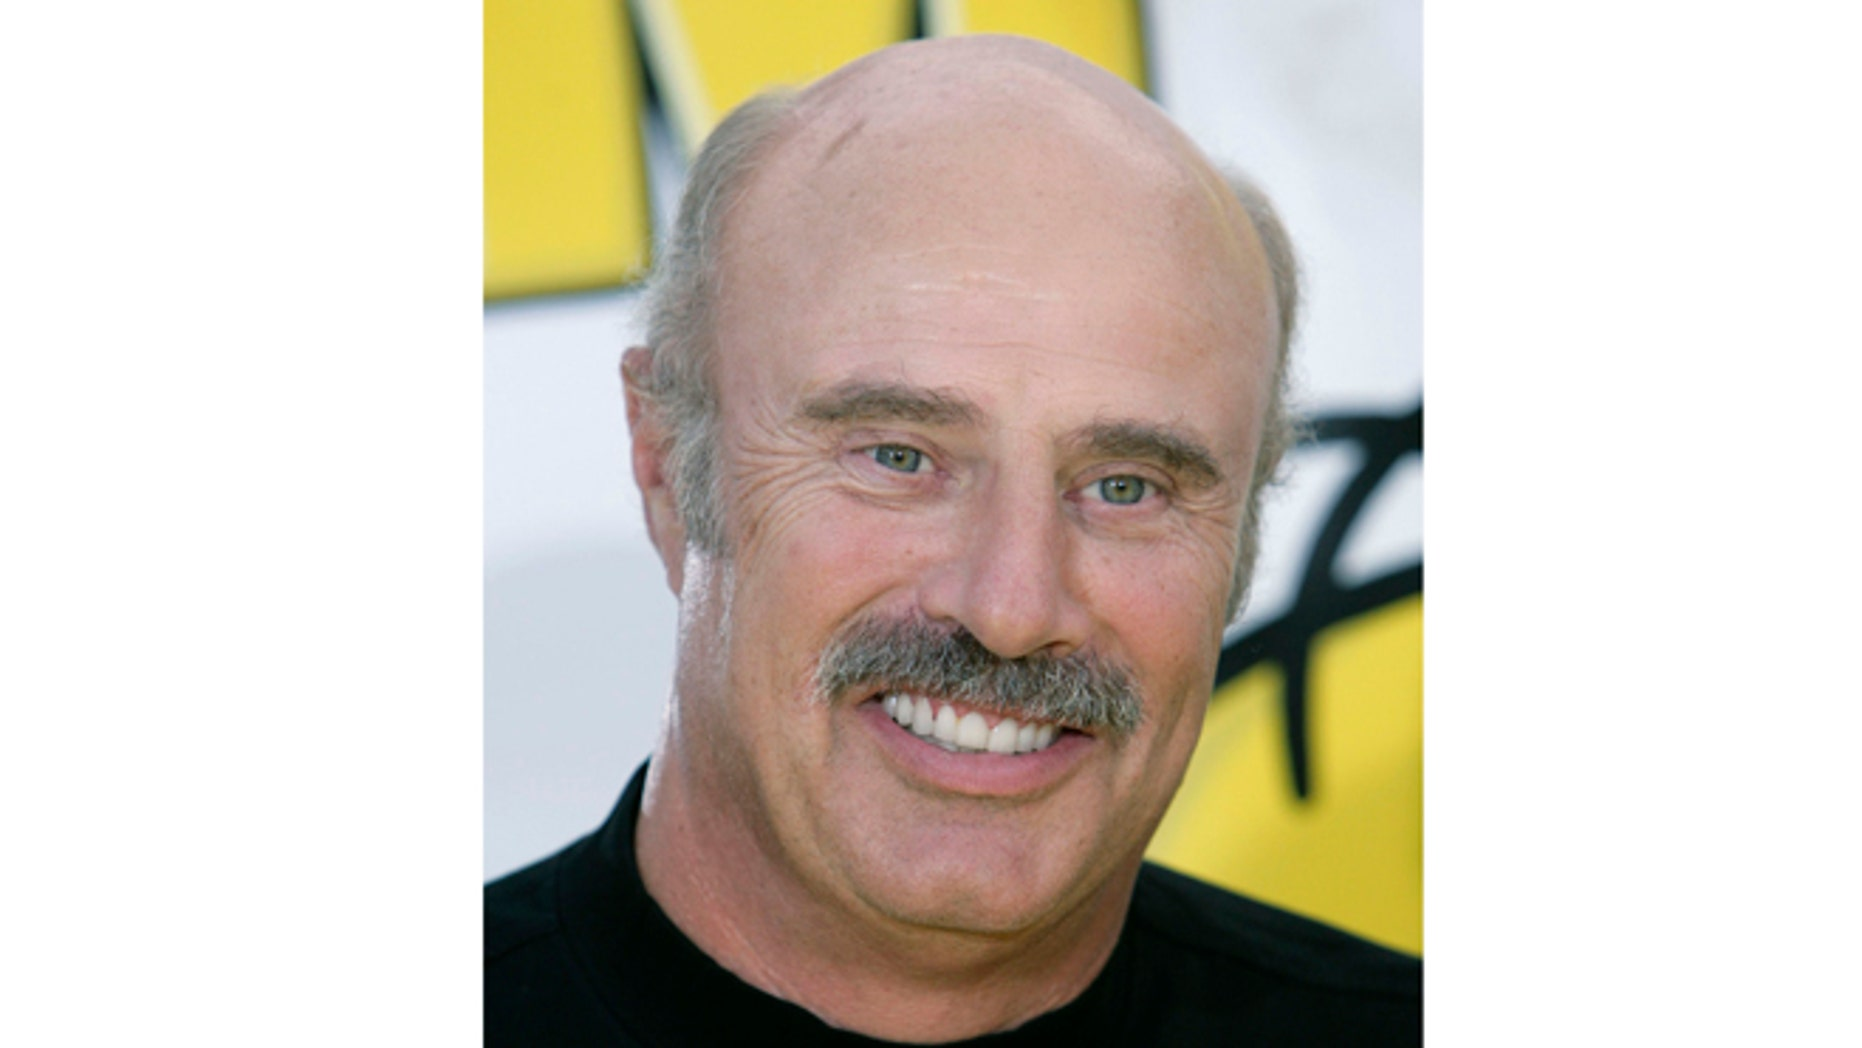 July 24, 2007: In this file photo, Dr. Phil McGraw is shown in Los Angeles.